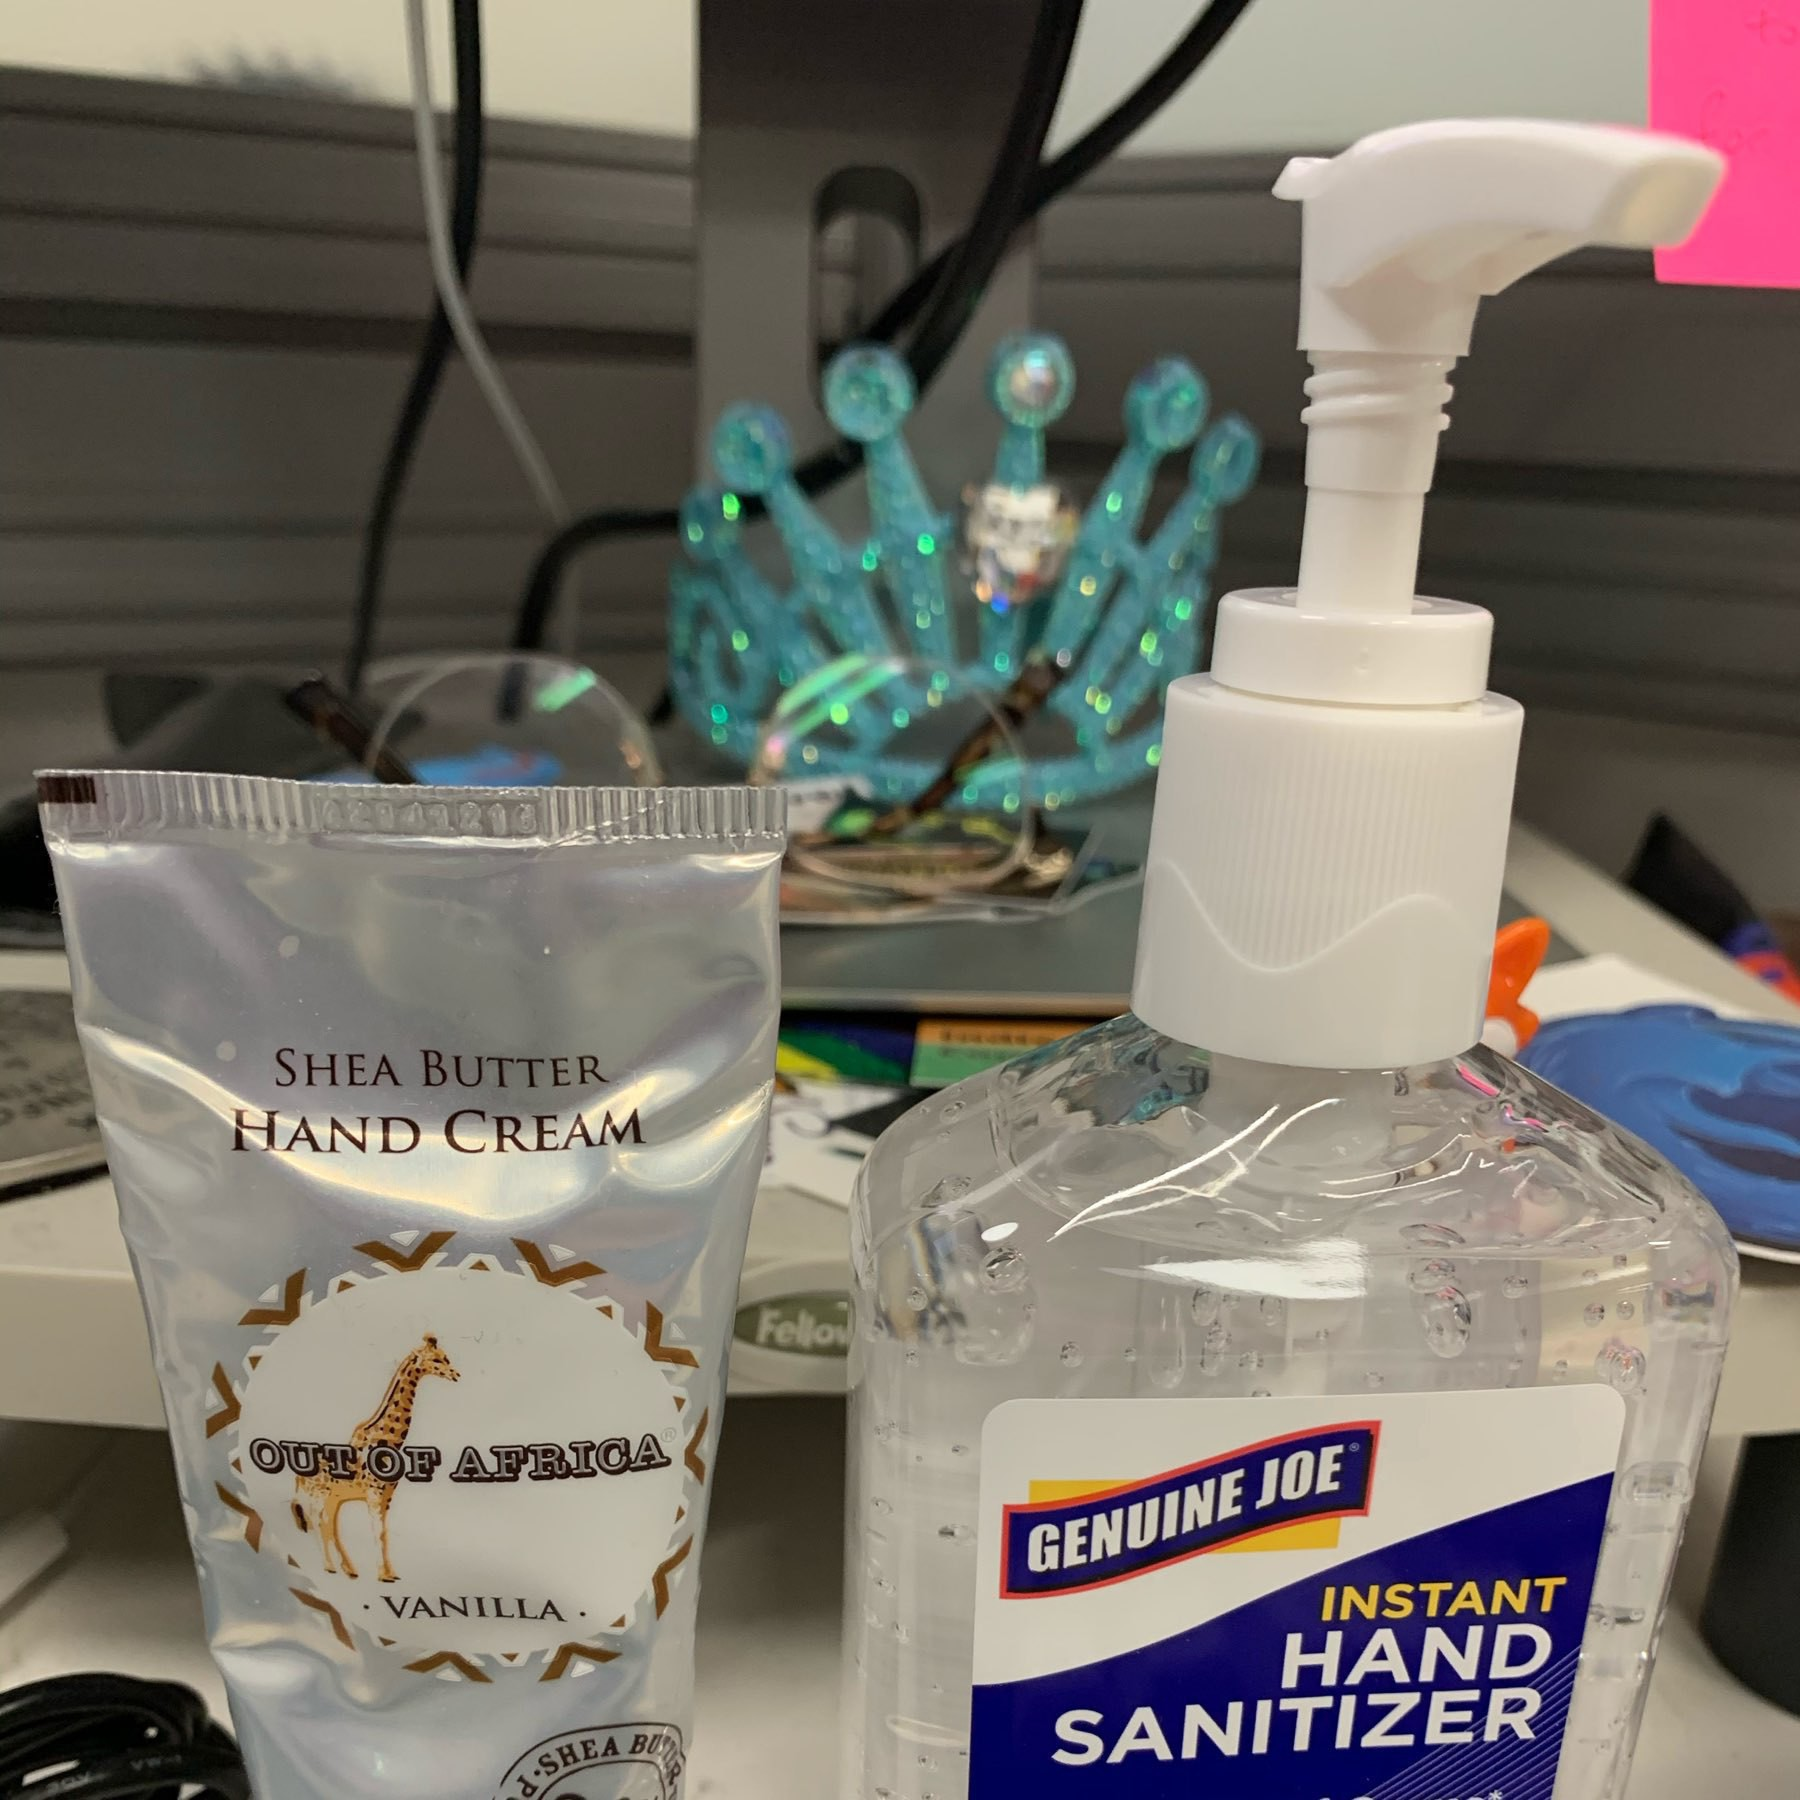 a photo of a tube of shea butter hand lotion, and a pump bottle of hand sanitizer